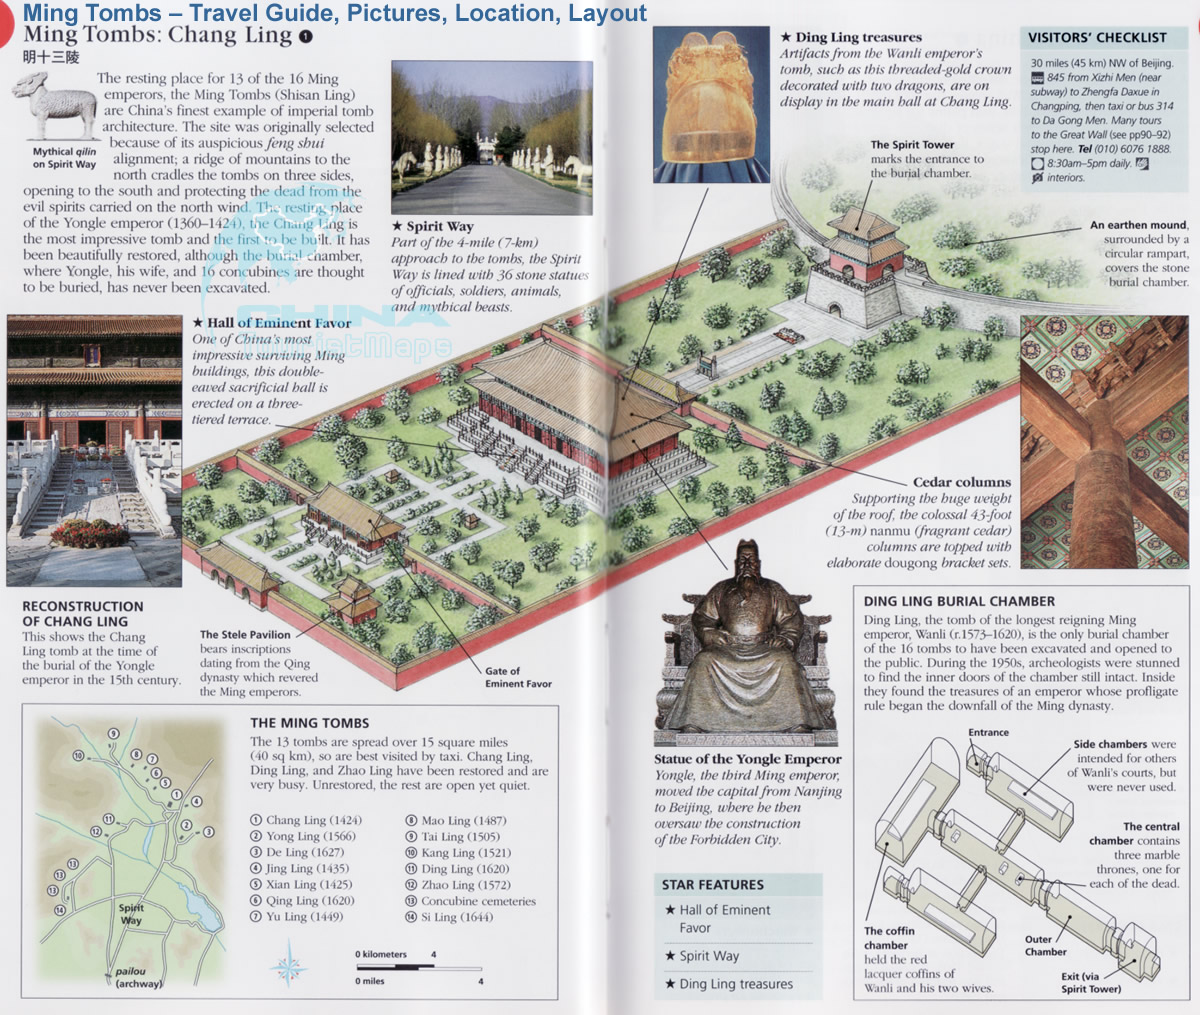 Ming Tombs Travel Guide